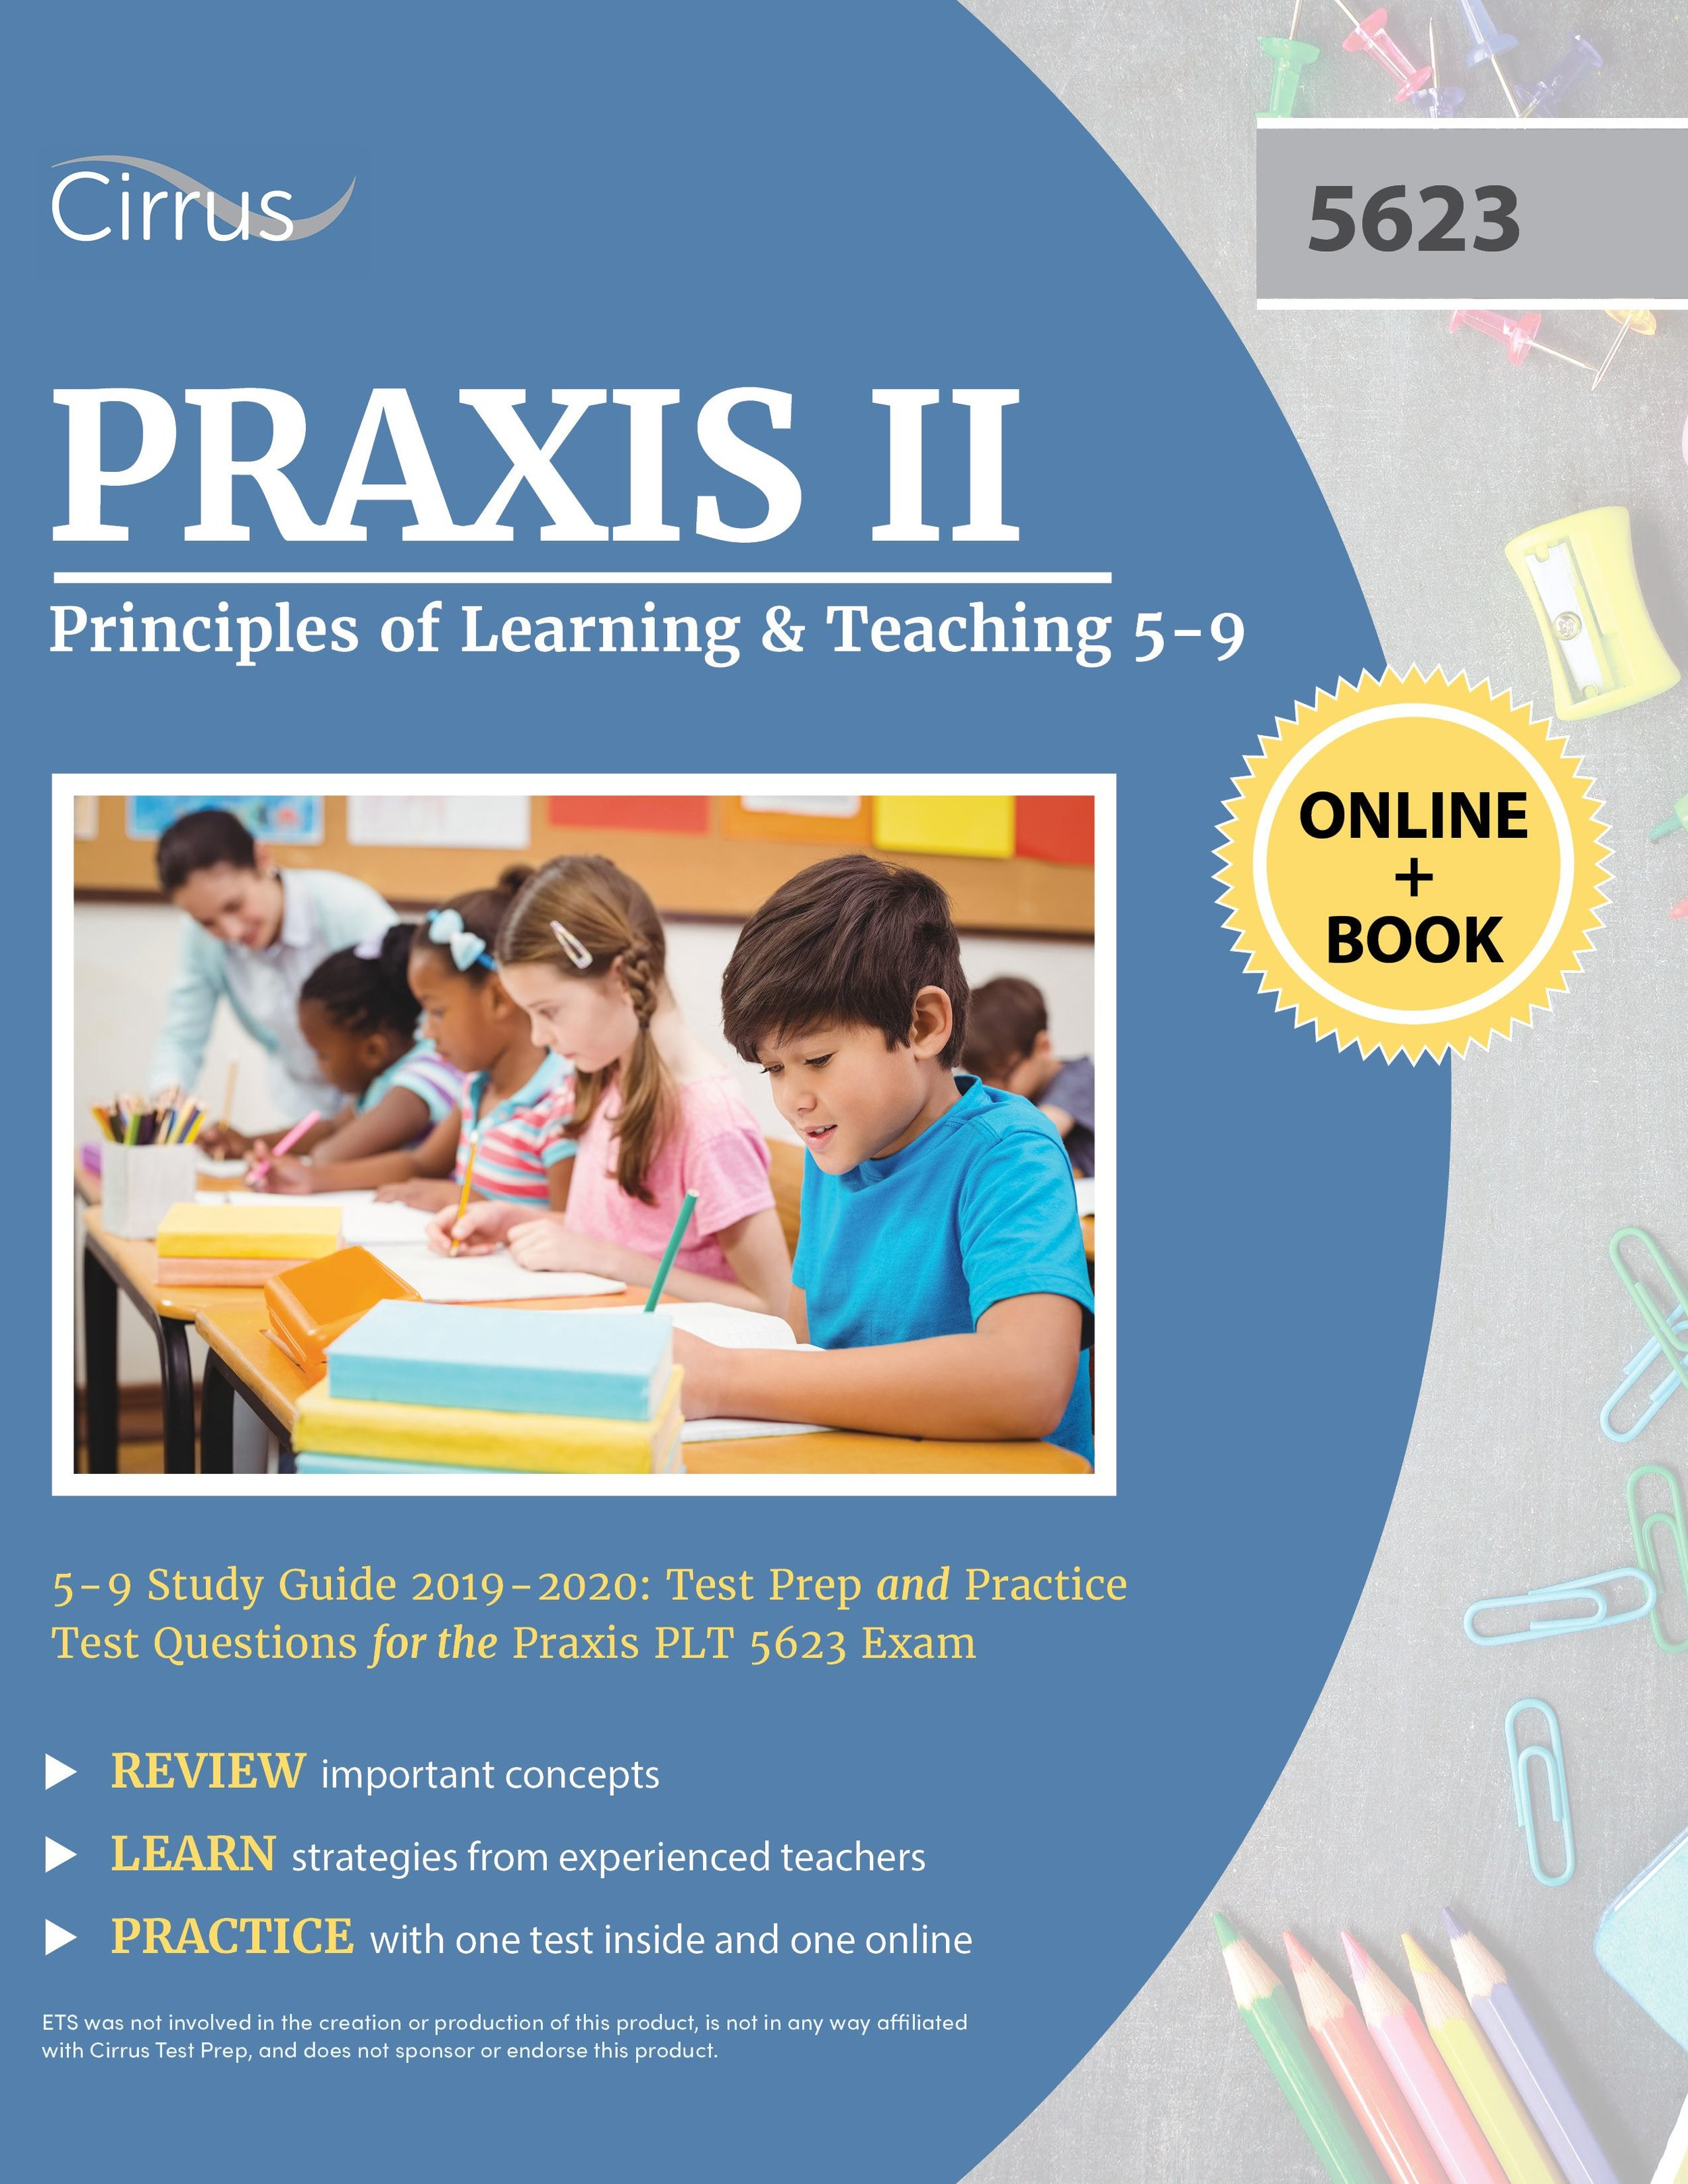 Praxis II Principles of Learning & Teaching 5 – 9 Study Guide 2019 – 2020